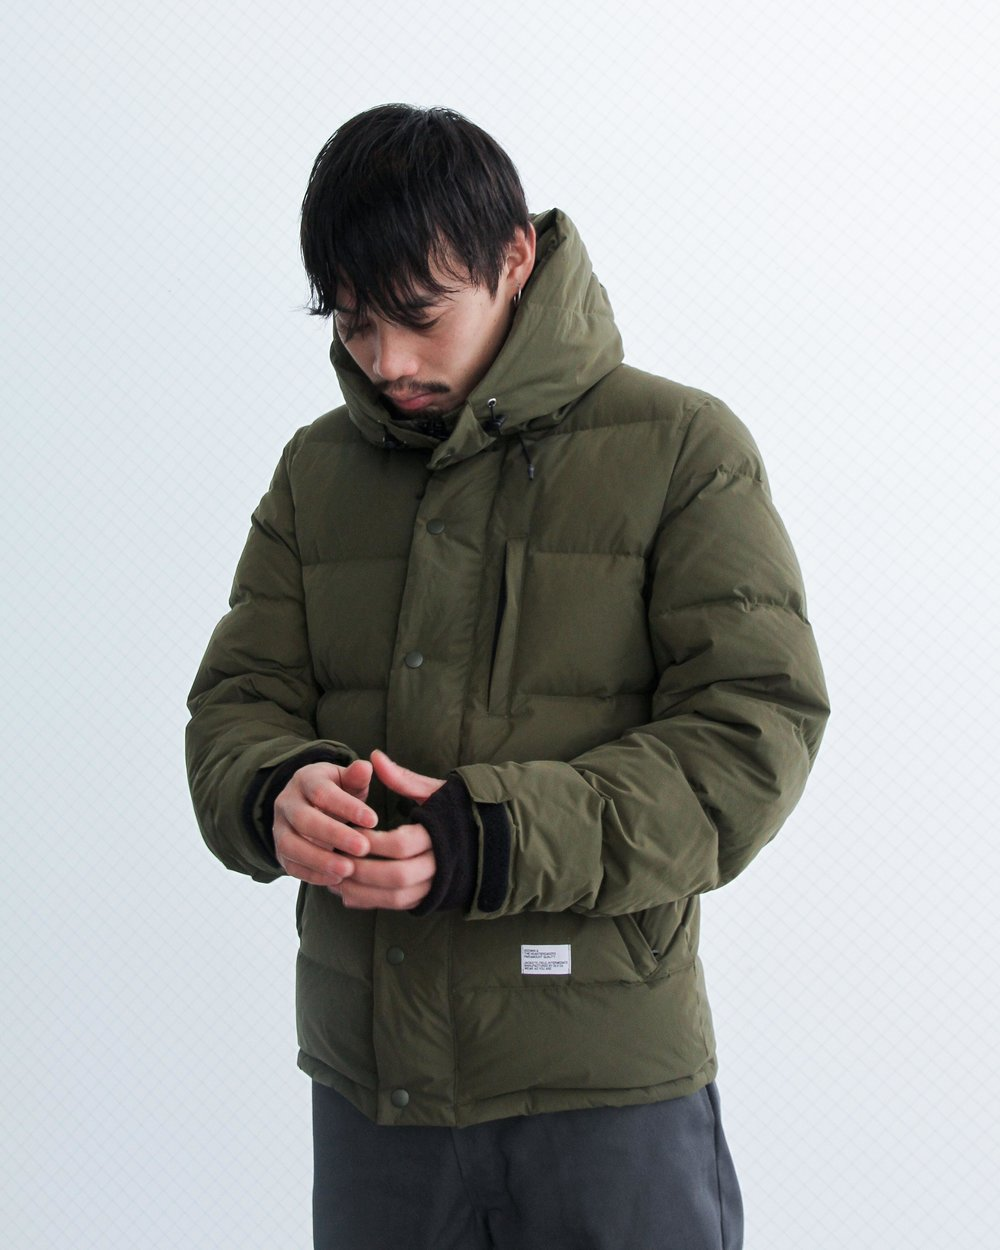 """Tadashi wears: """"QUINE"""" Hooded down jacket. Available in Olive, Black and Blue."""